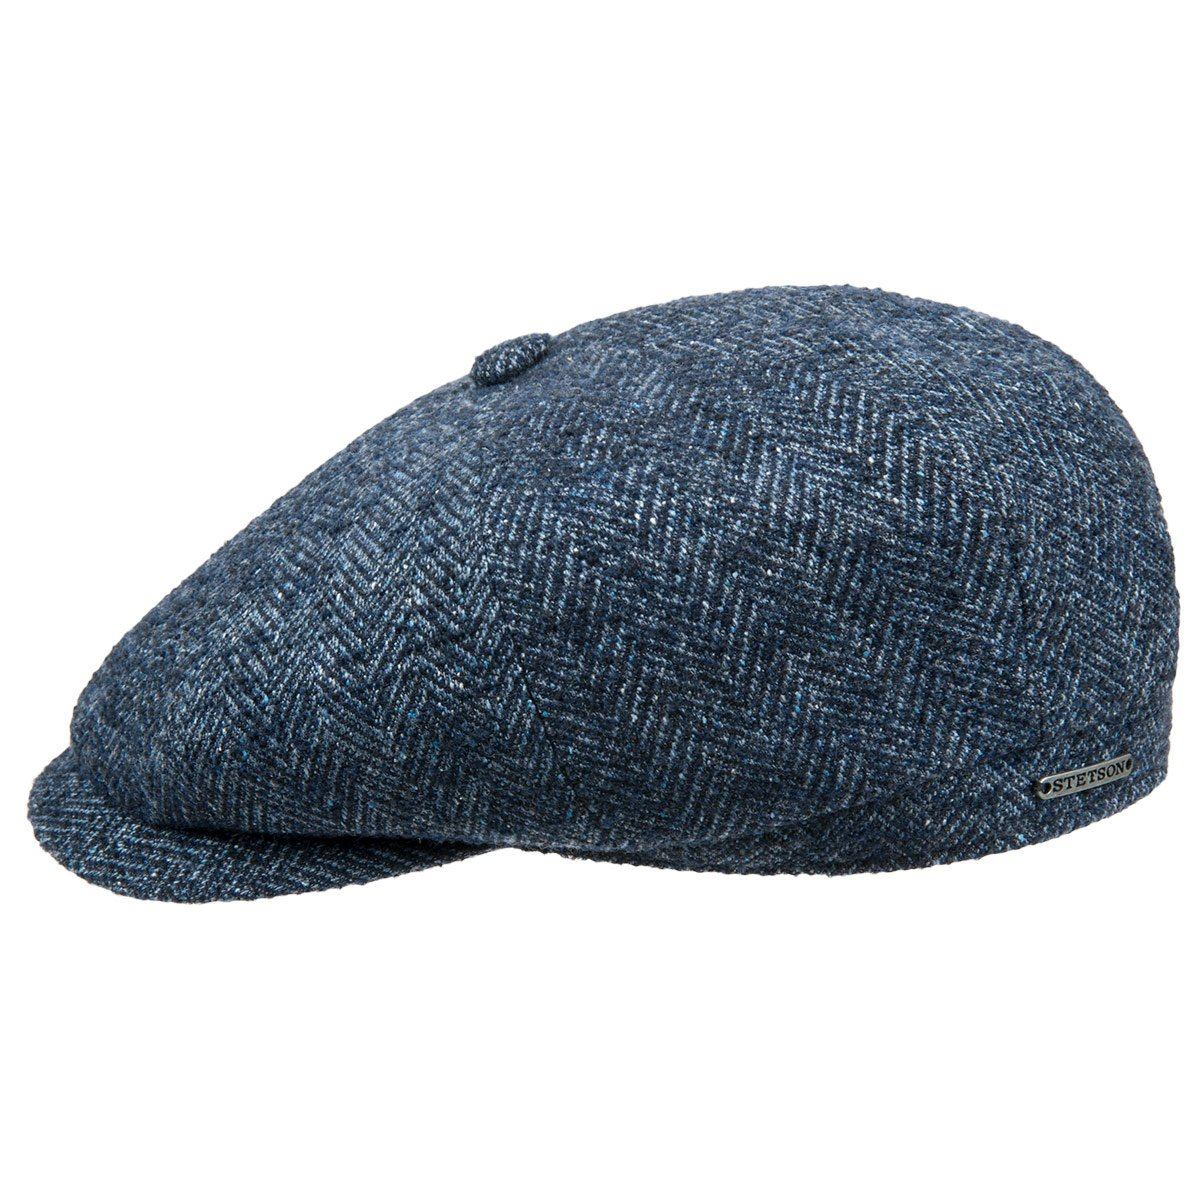 d4b5fcaef STETSON | Hatteras Virgin Wool cap